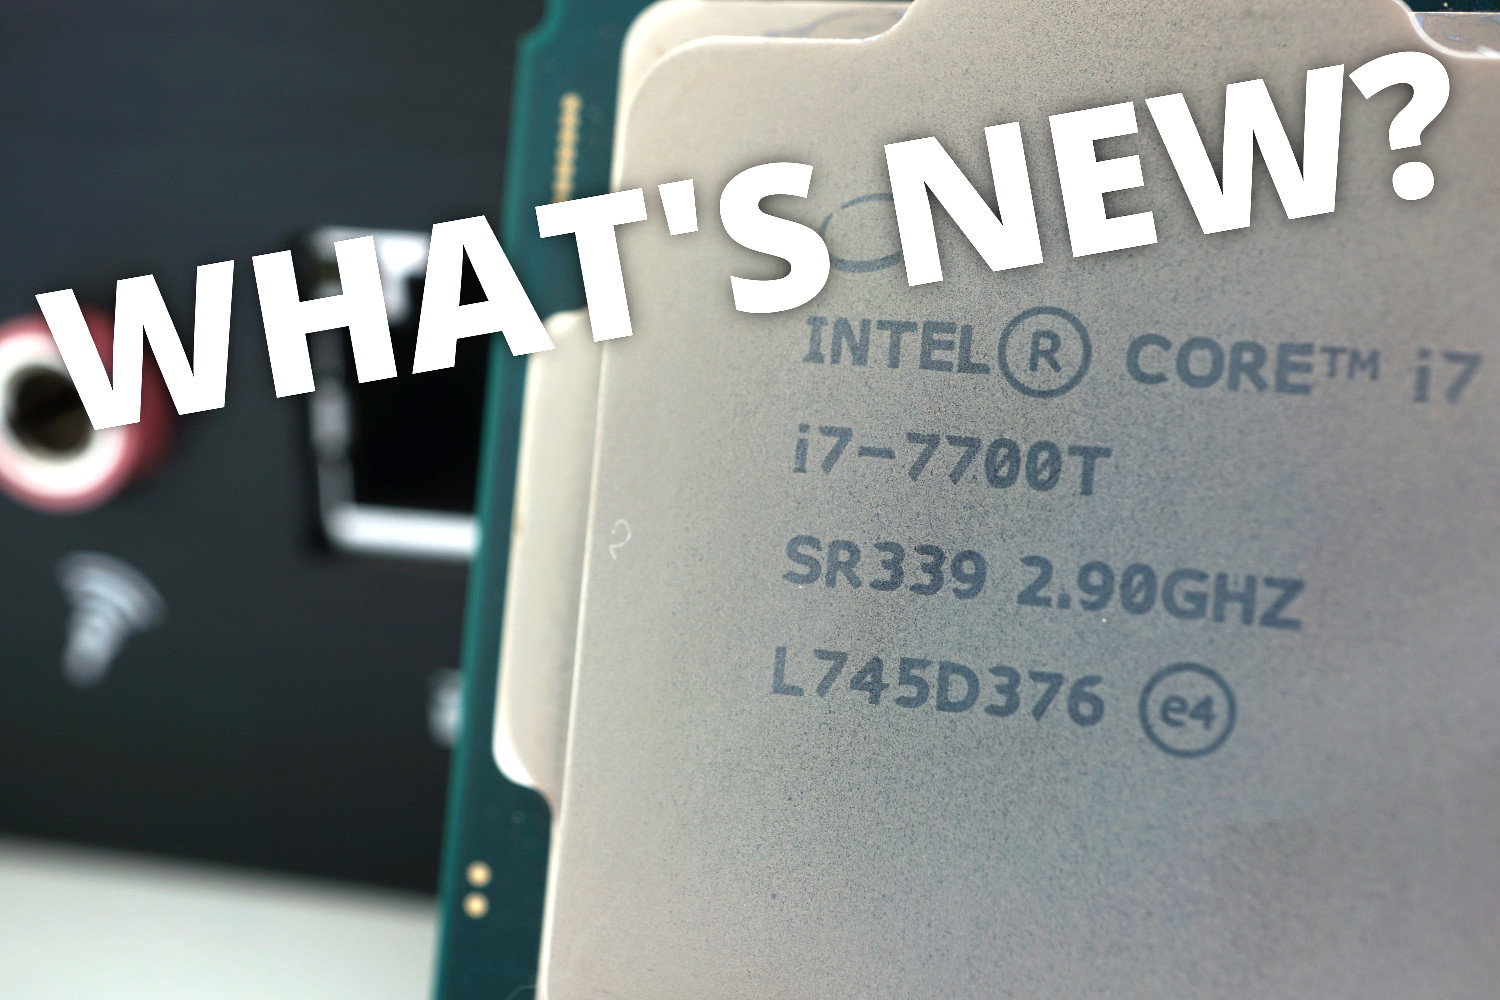 What's New? No more Windows 7 support and new AMD Ryzen CPUs